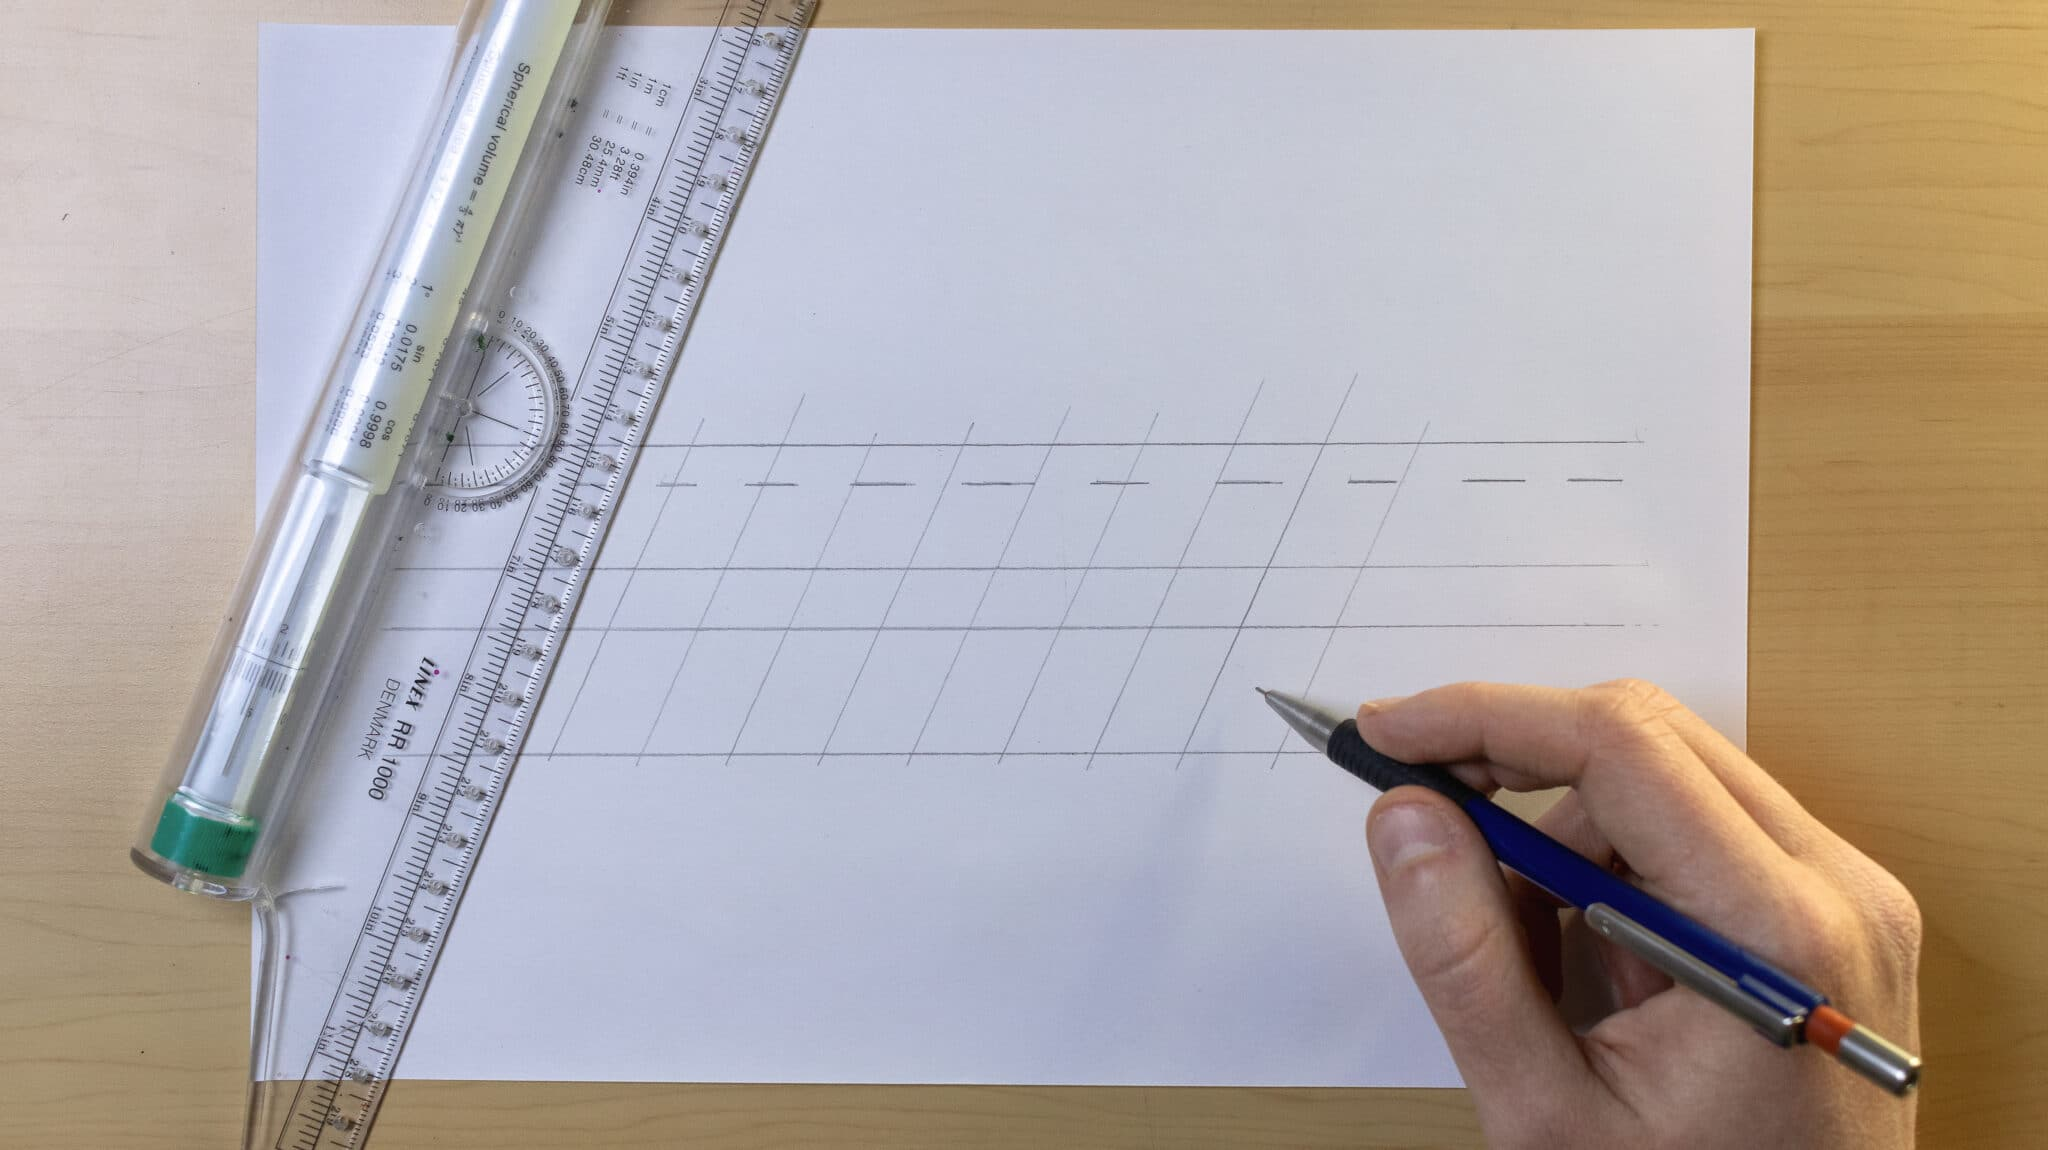 How To Make Calligraphy Guidelines Image 5 - Lettering Daily